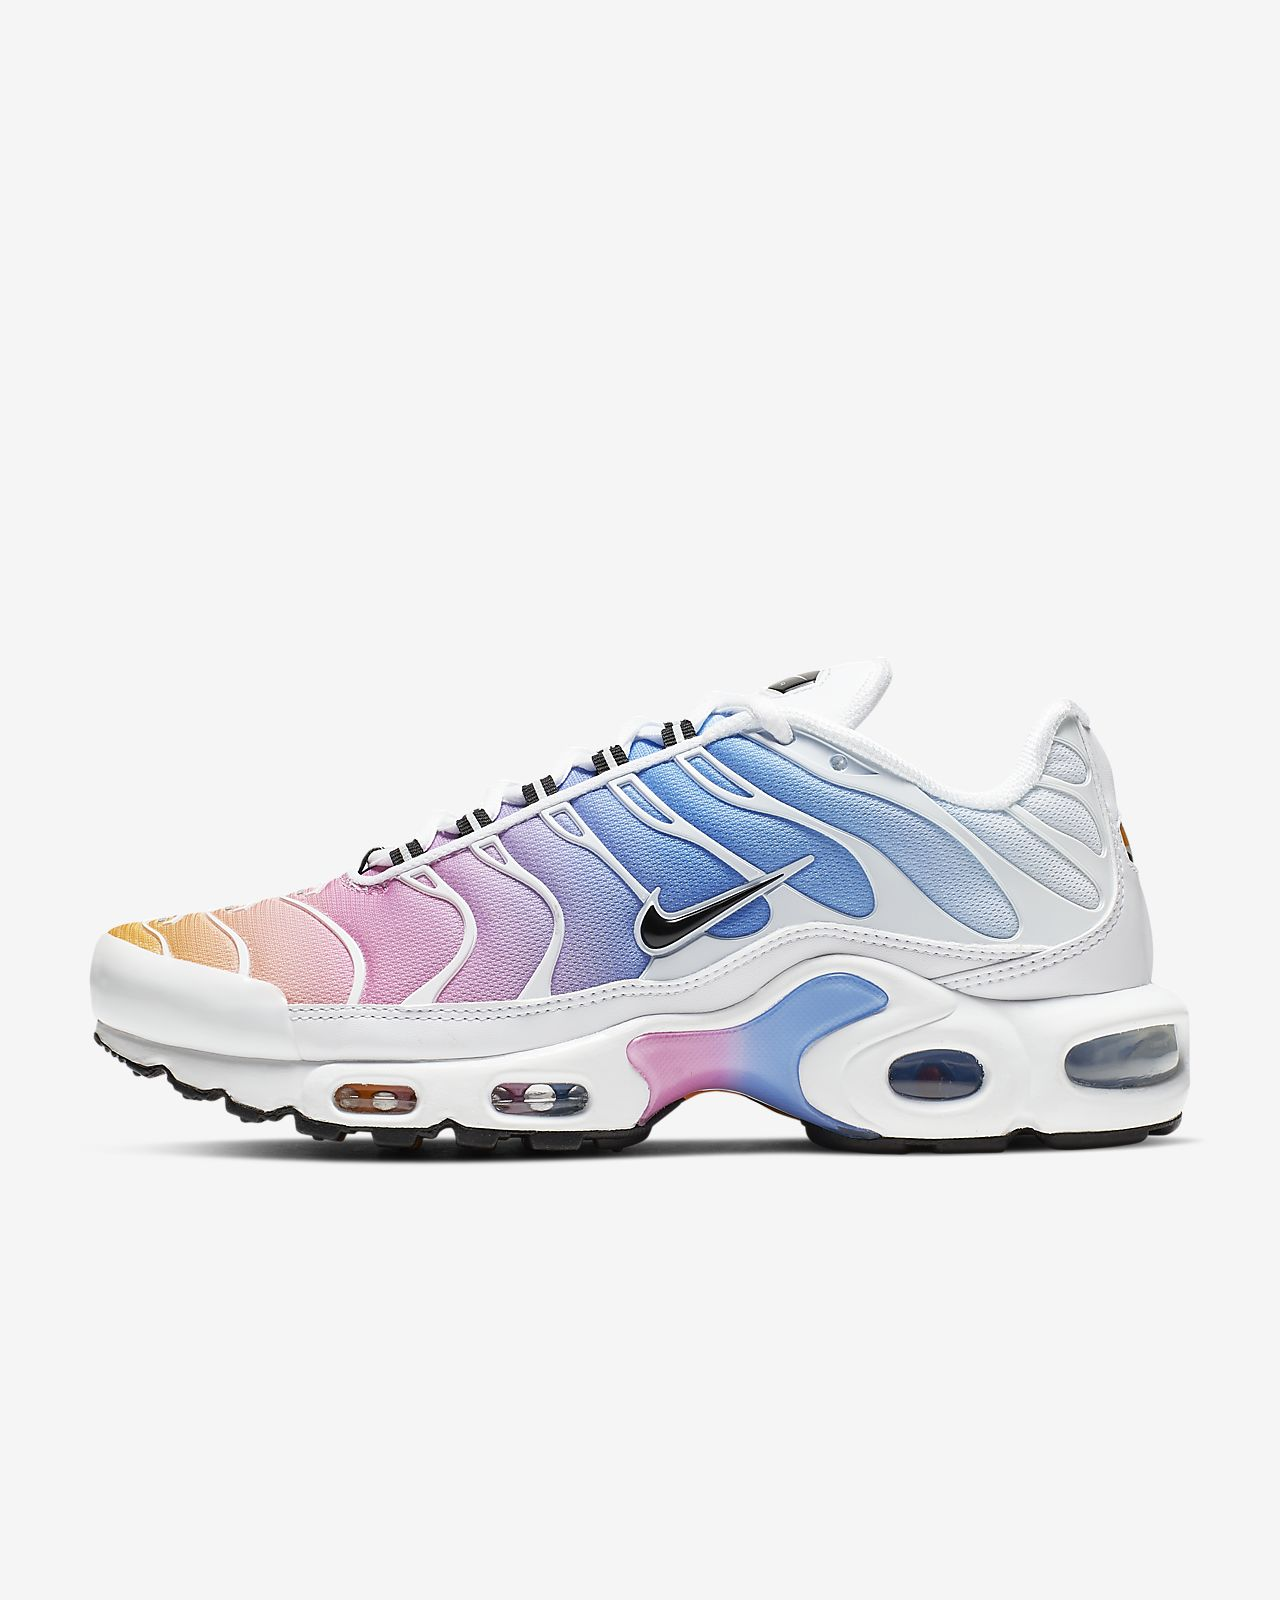 Sko Nike Air Max Plus